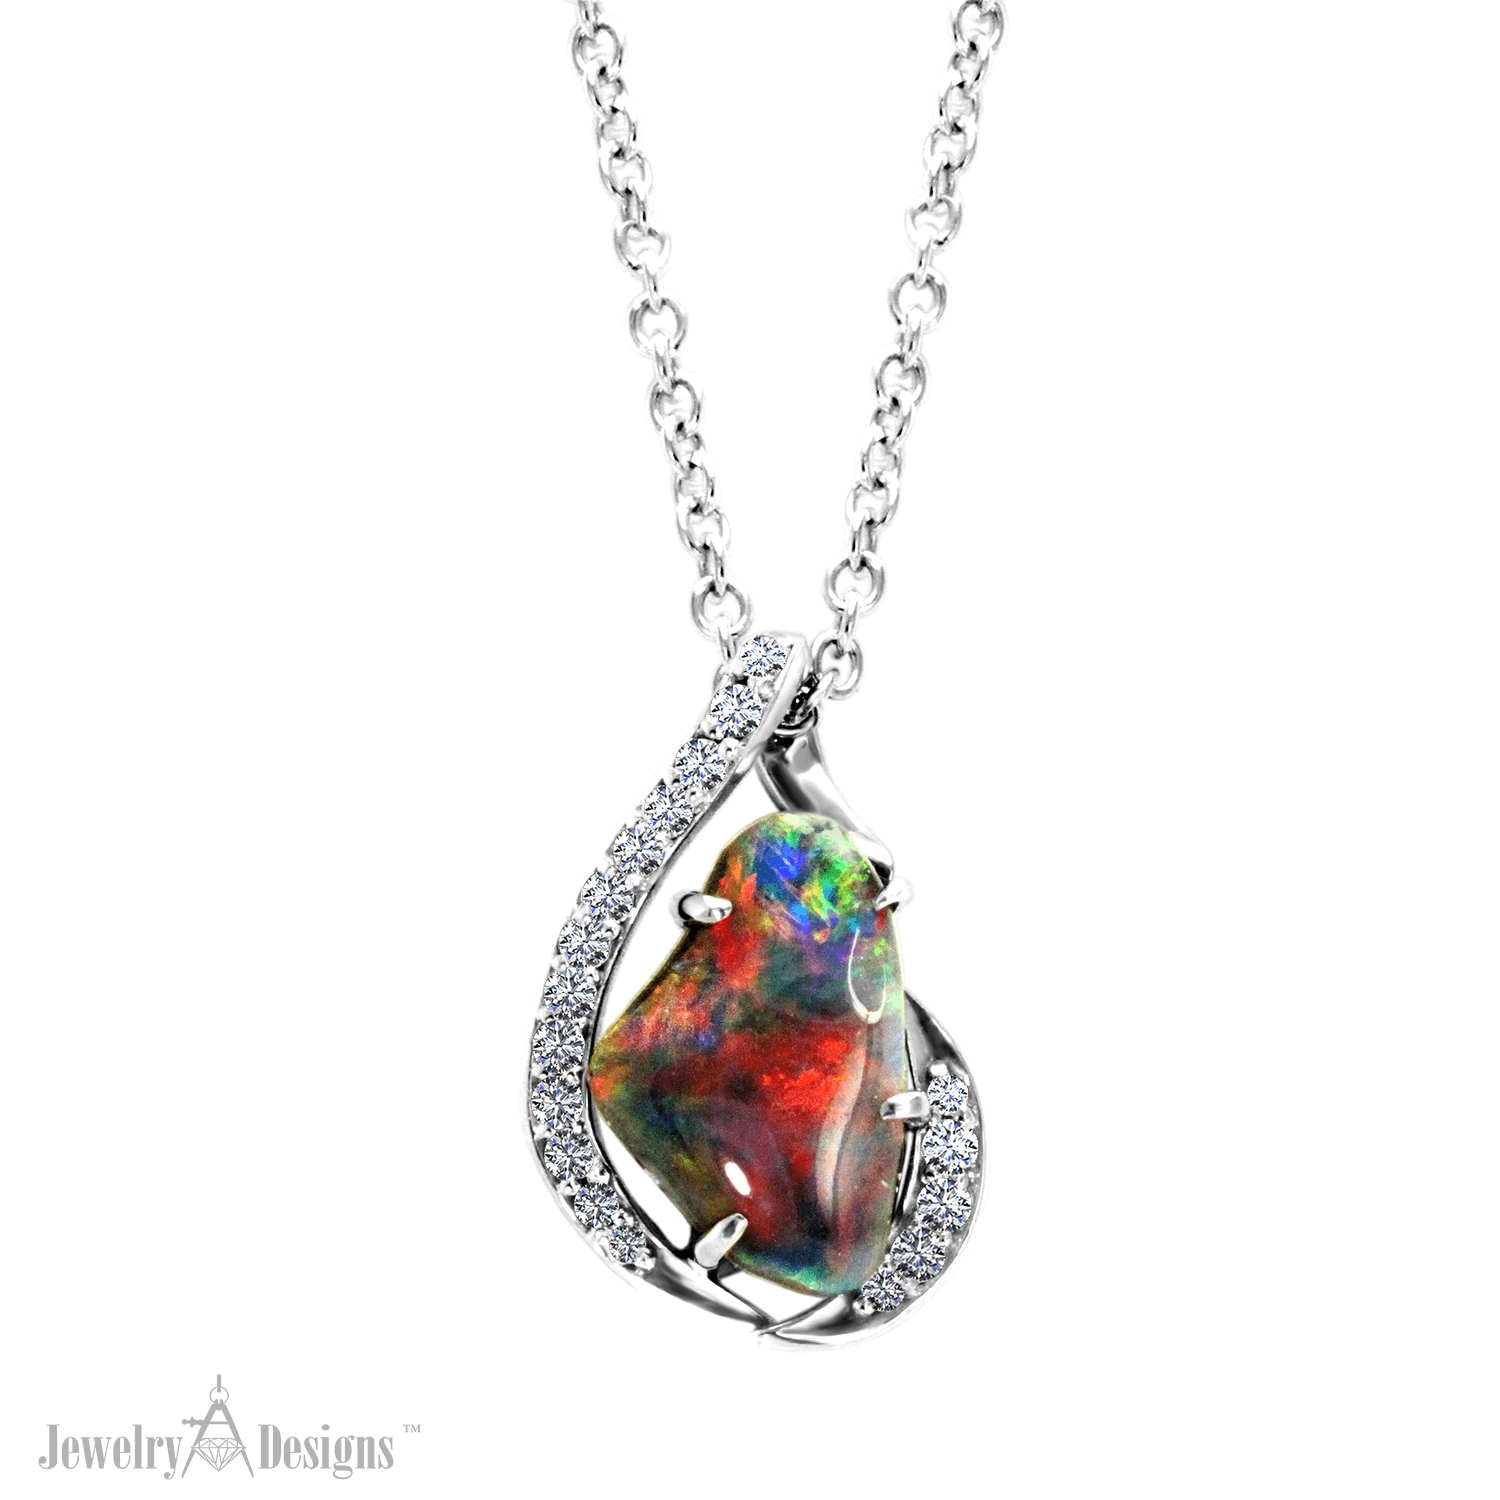 NC718-1 Fiery Black Opal Necklace